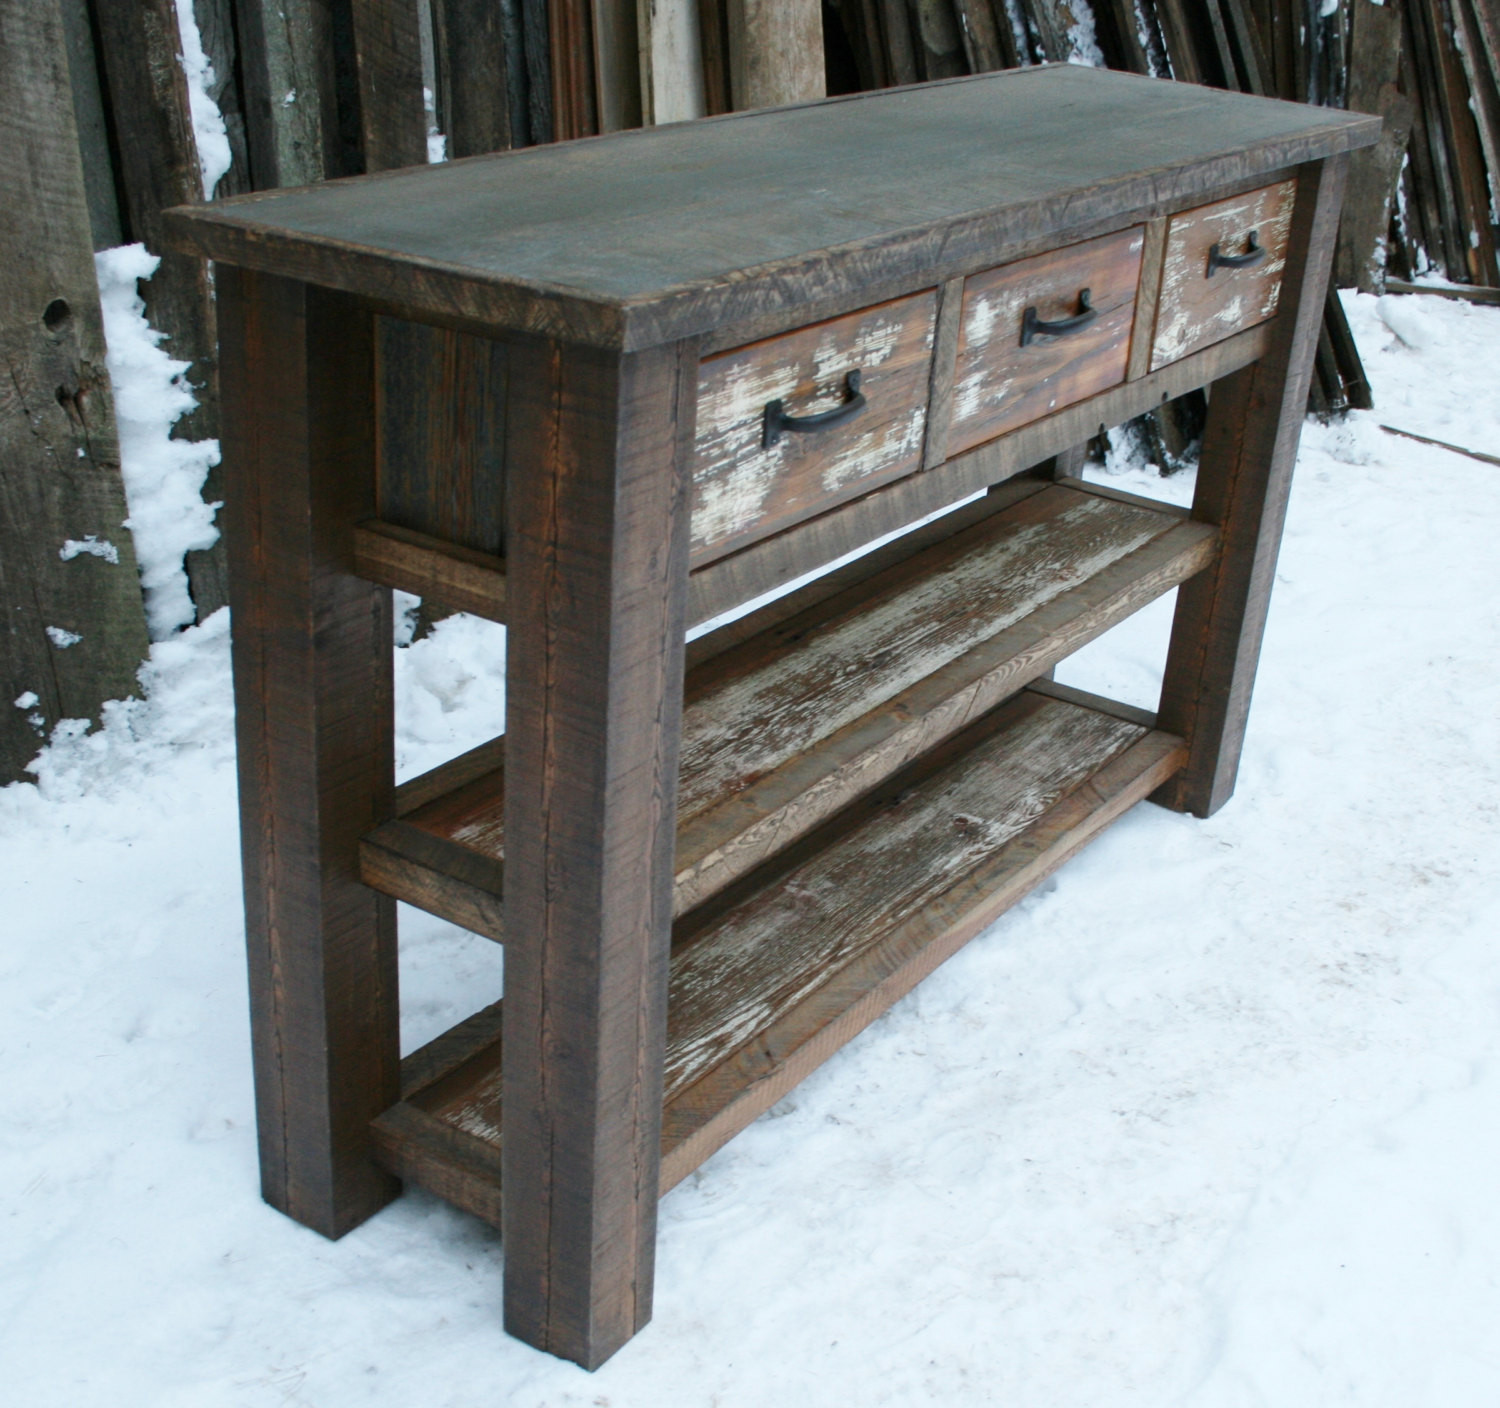 Best ideas about Rustic Entryway Table . Save or Pin Reclaimed Rustic Console Entry Table by EchoPeakDesign on Etsy Now.